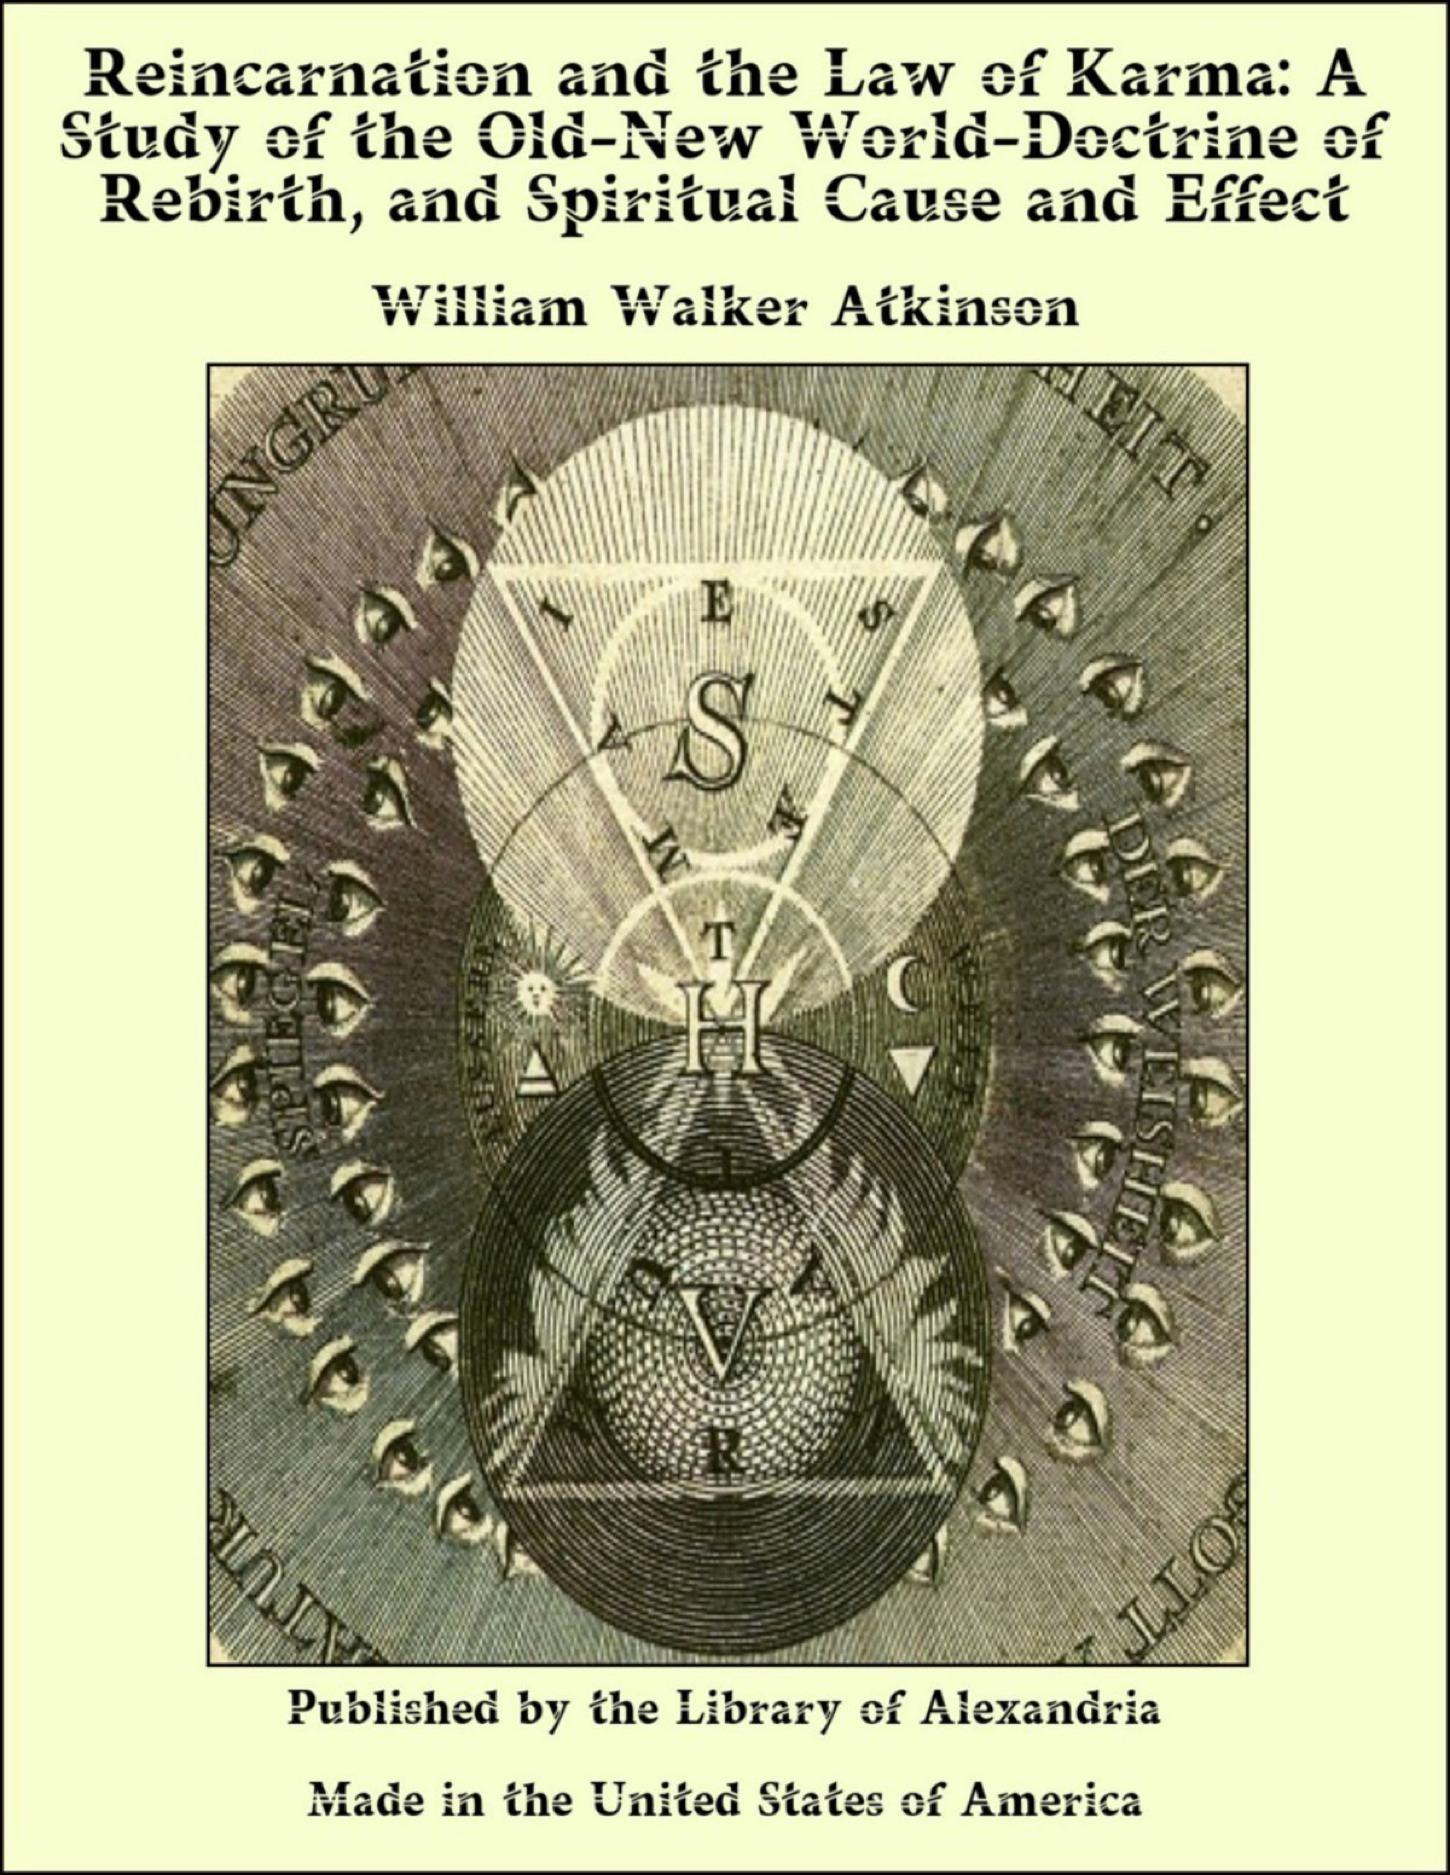 William Walker Atkinson - Reincarnation and The Law of Karma: A Study of The Old-New World-Doctrine of Rebirth, and Spiritual Cause and Effect